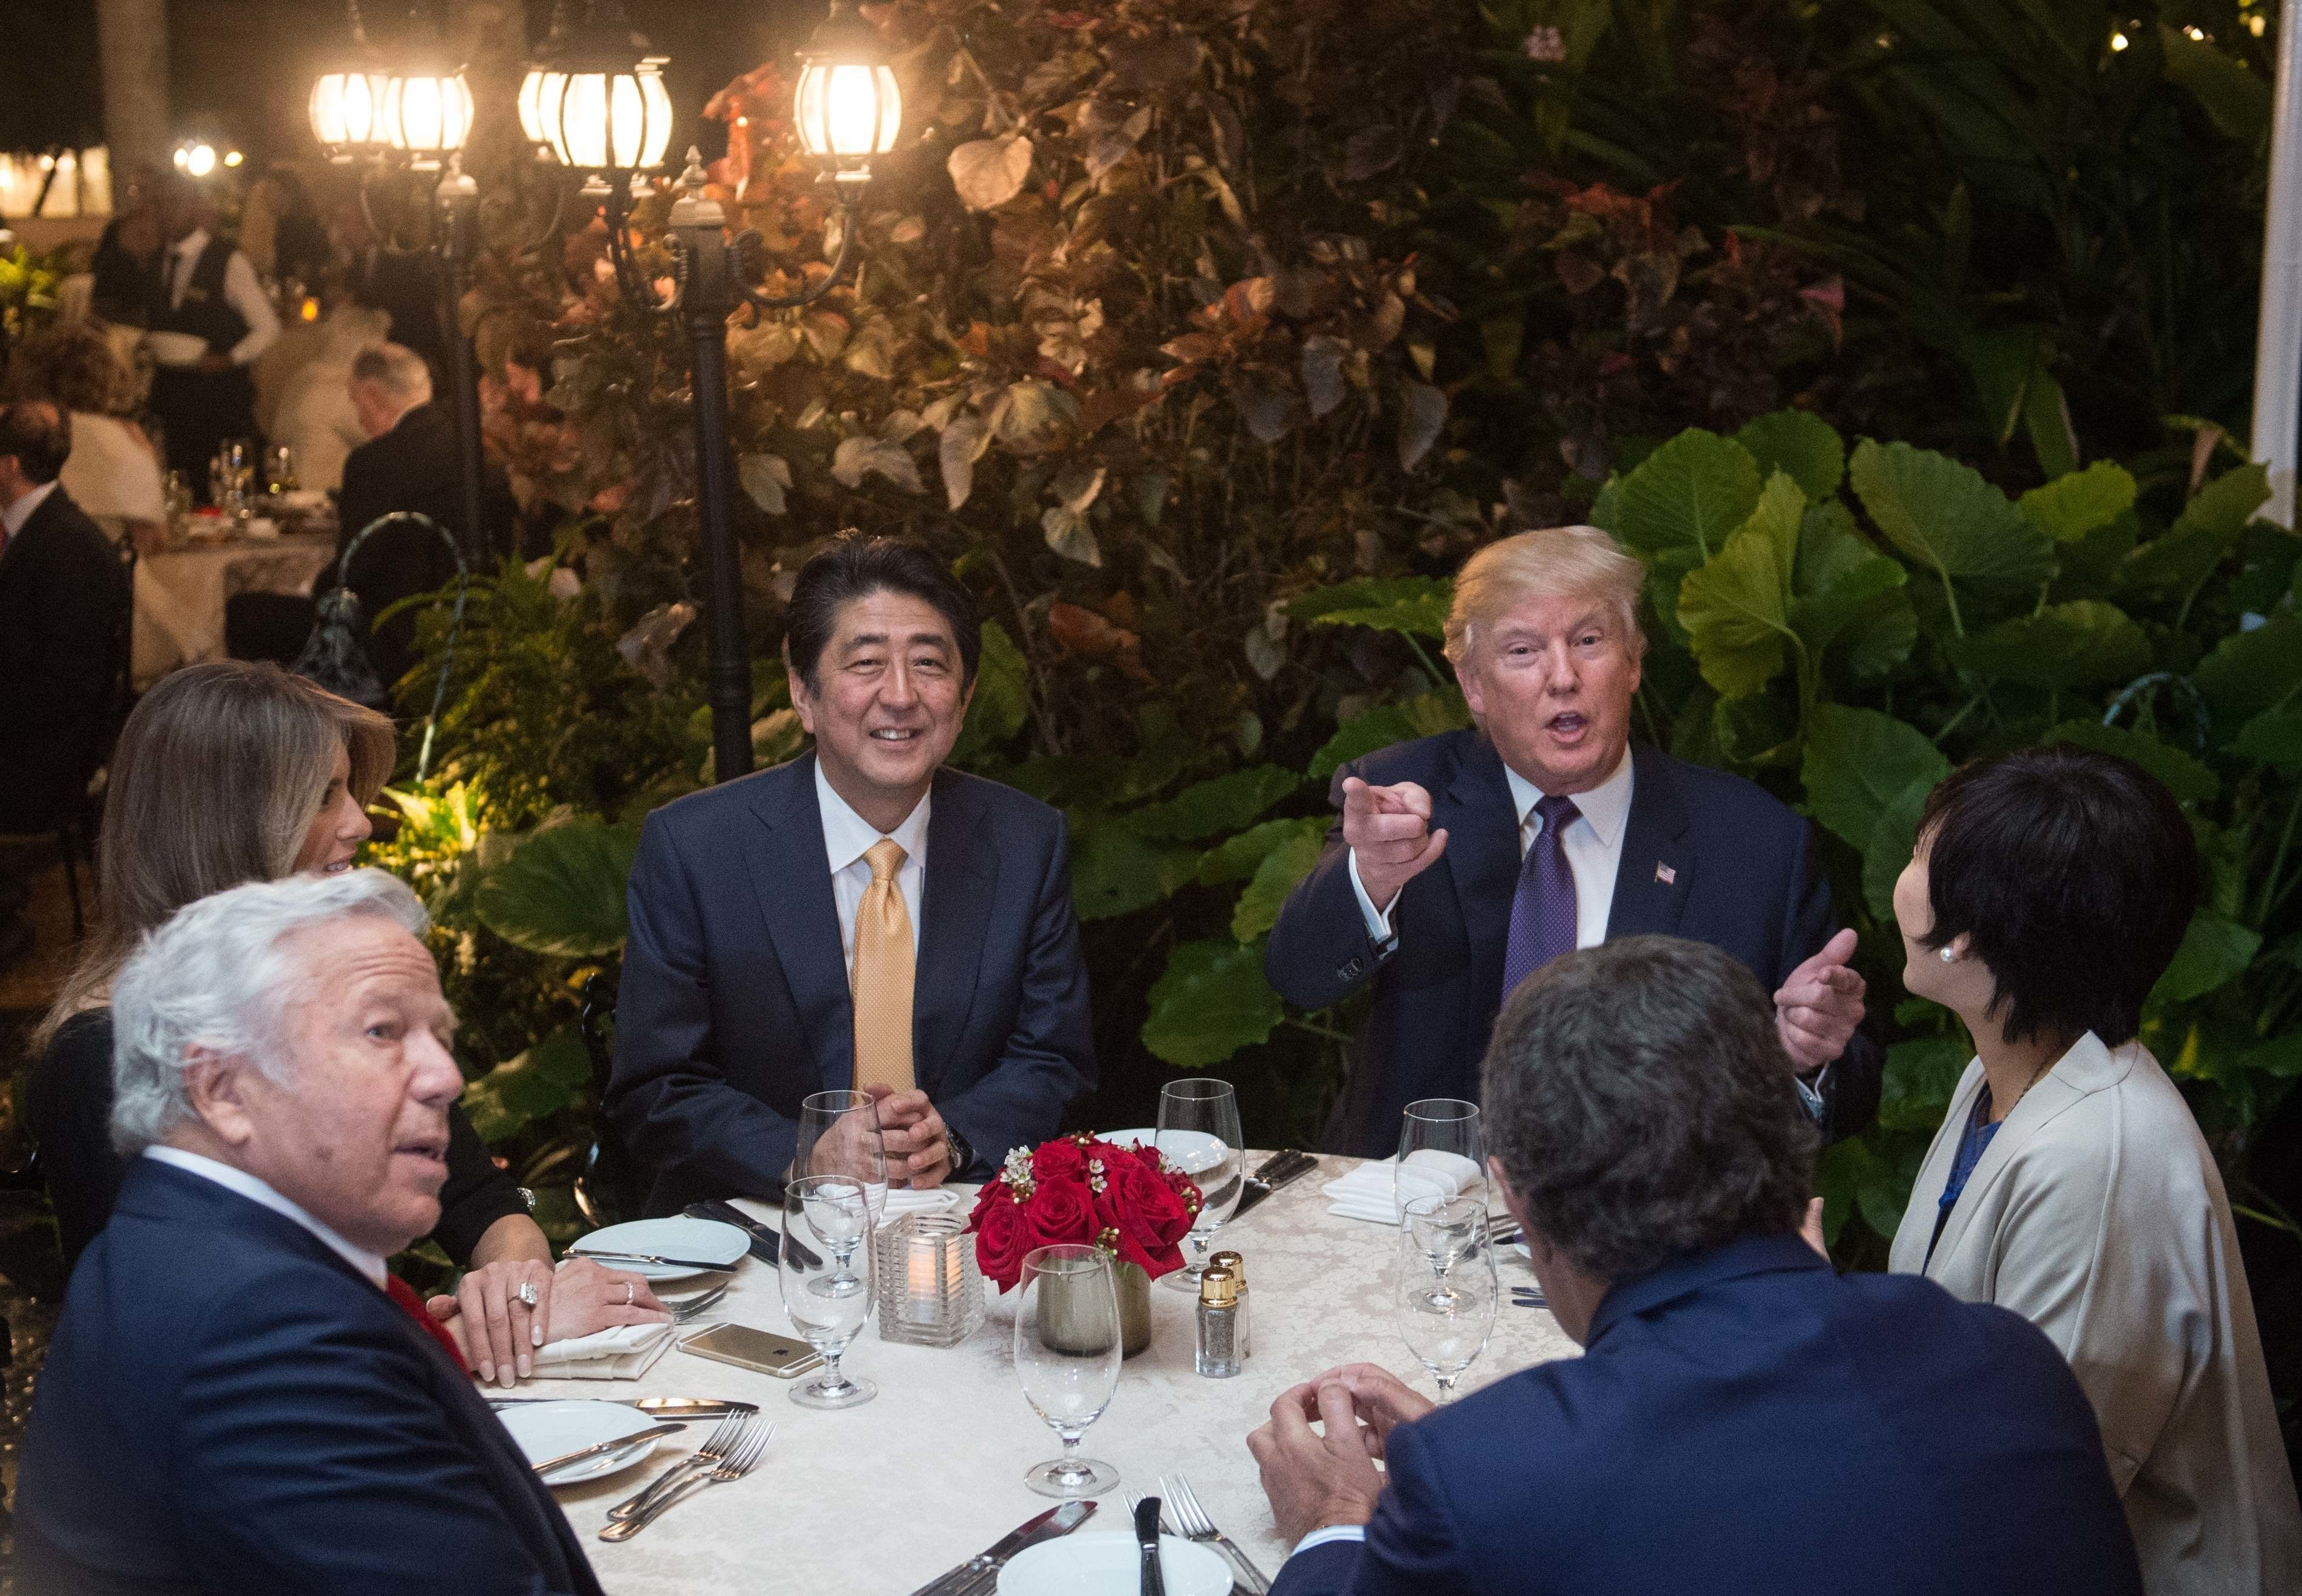 The Trumps,Japanese Prime Minister Shinzo Abe, his wife Akie Abe, and New England Patriots owner Robert Kraft haddinner at Mar-a-Lago in February.